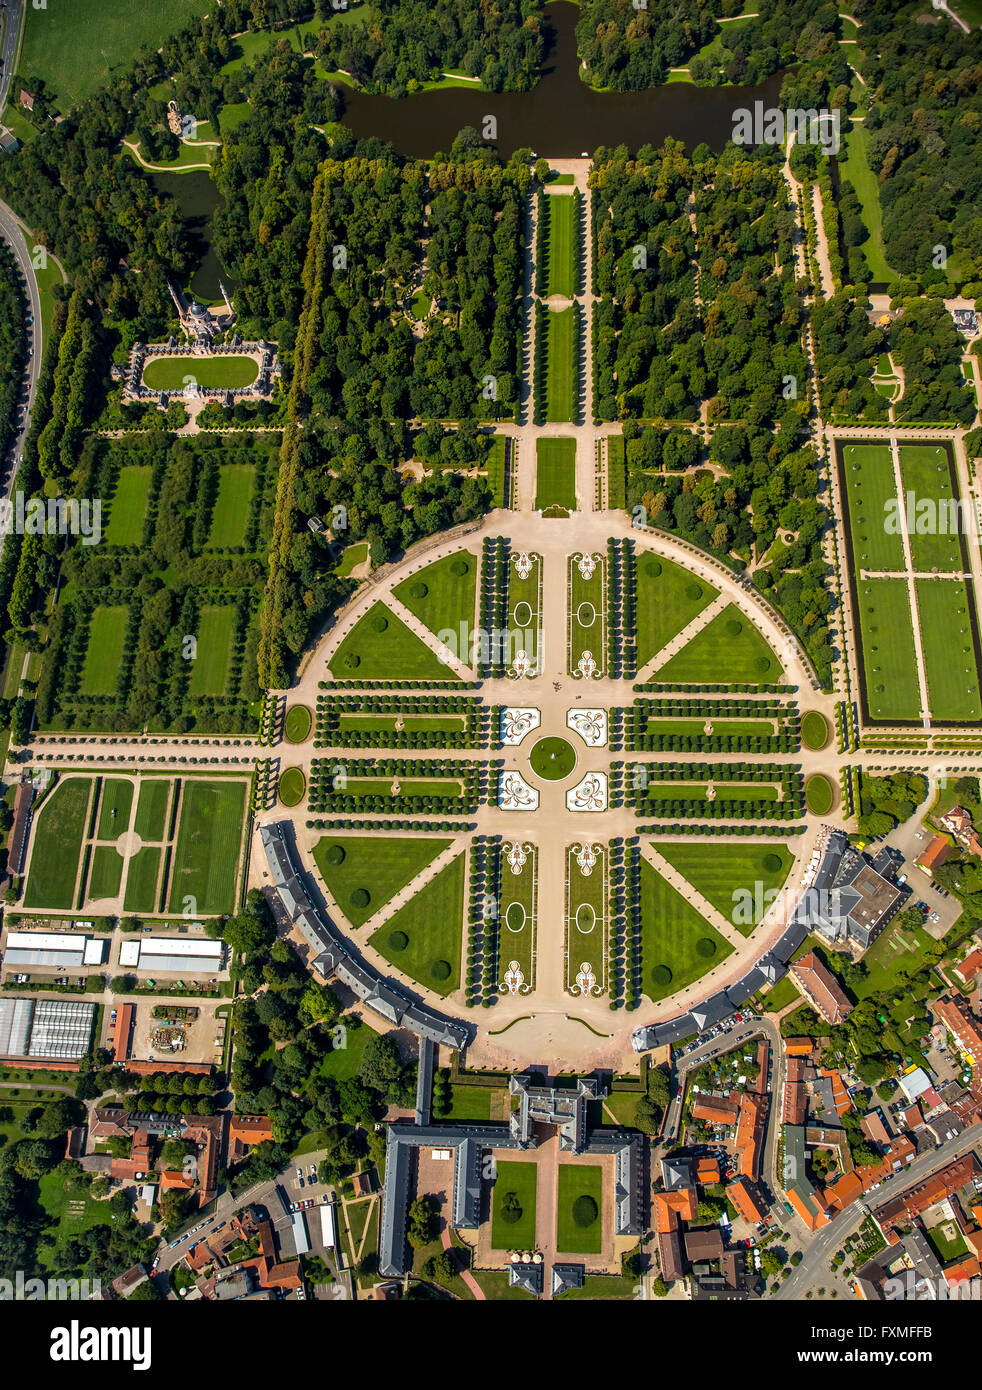 Aerial View French Garden Baroque Garden With The